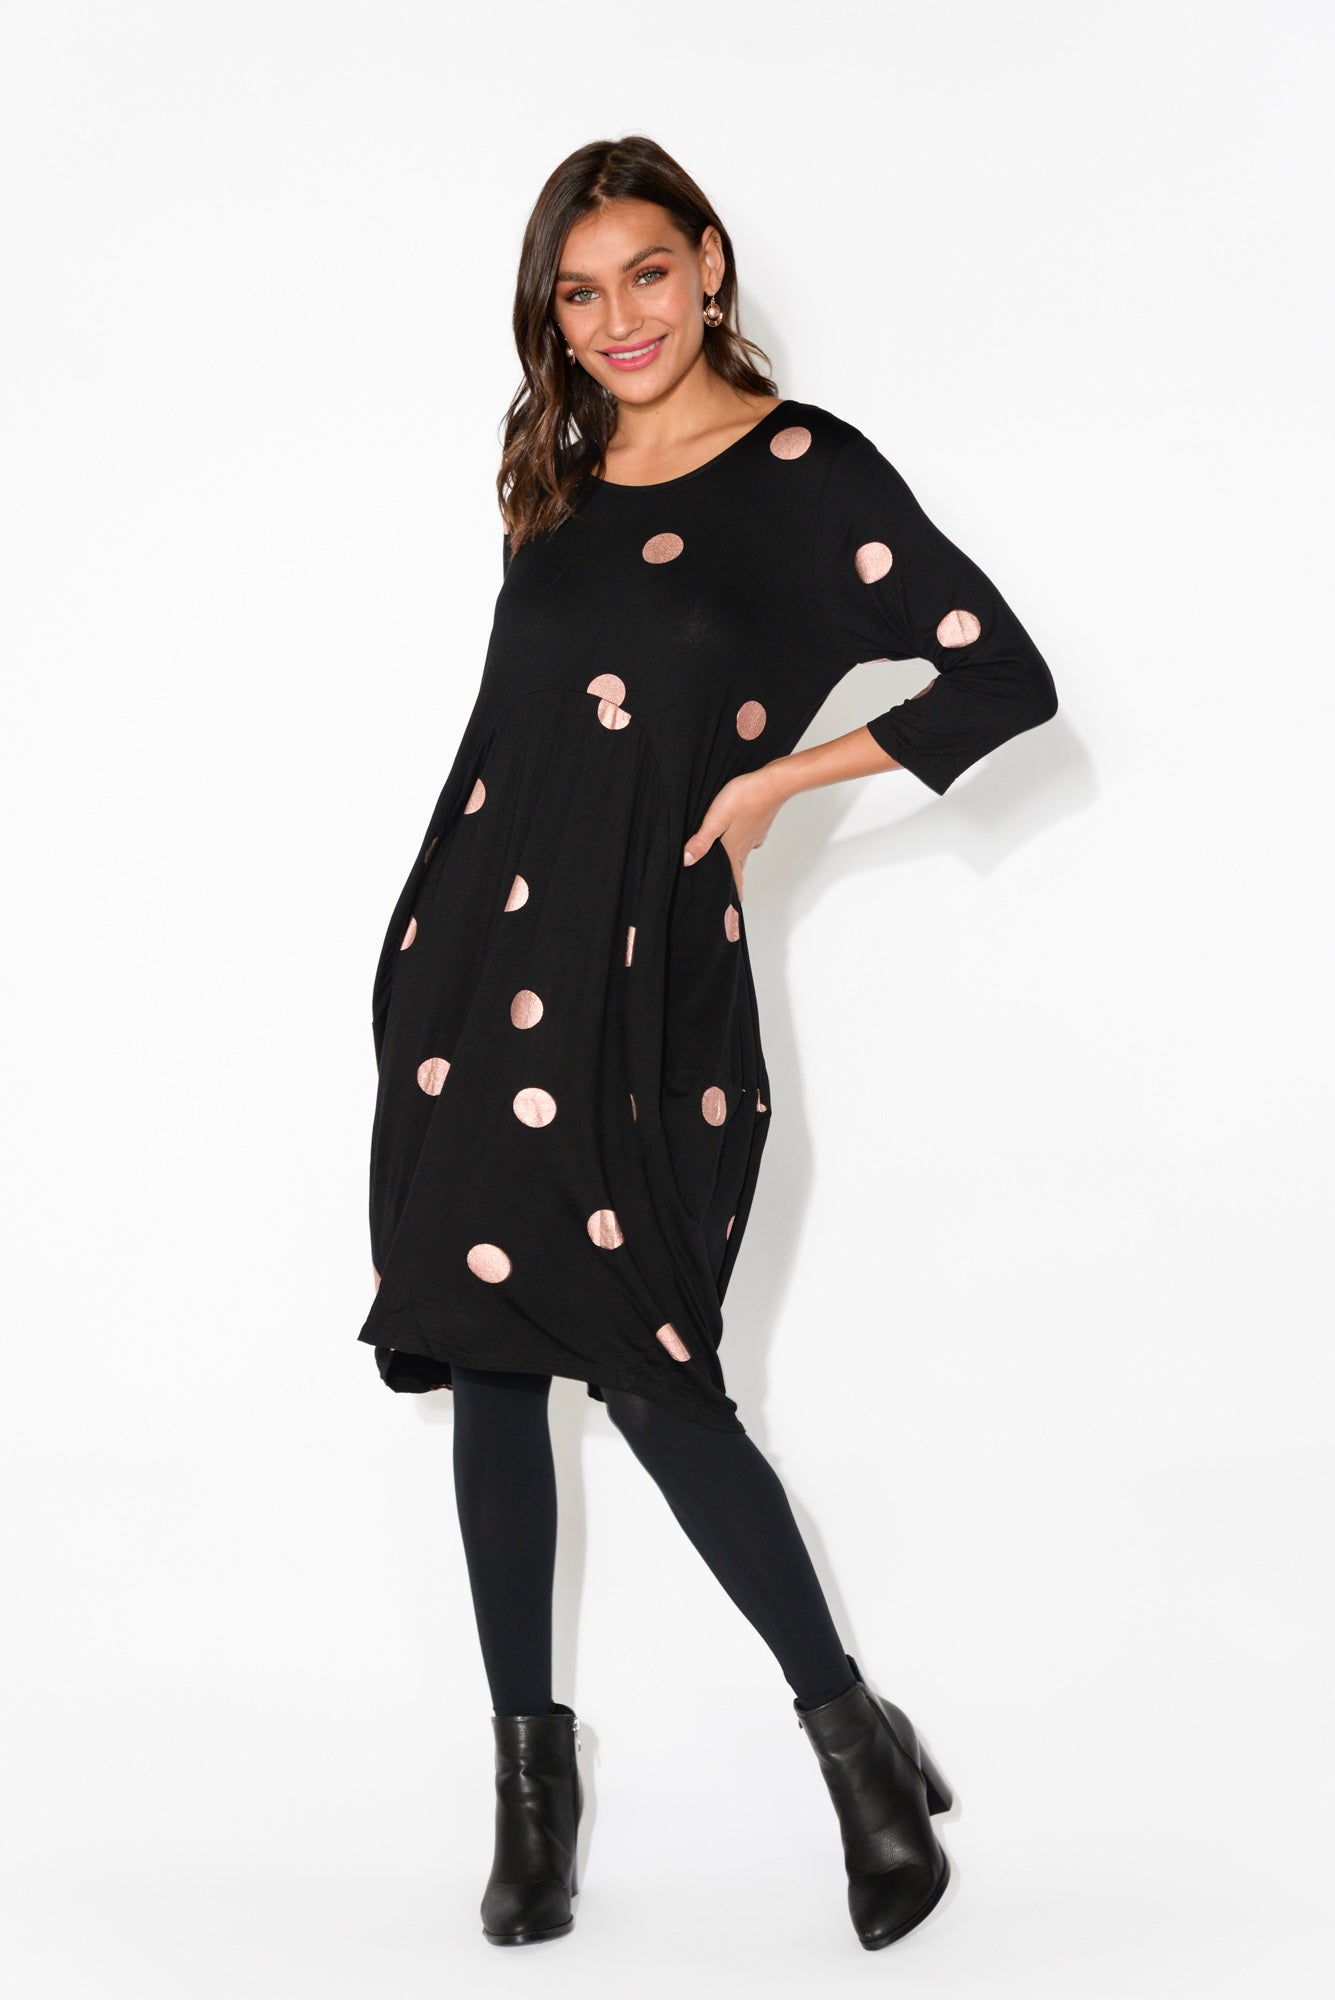 Coco Black Spot Sleeved Dress